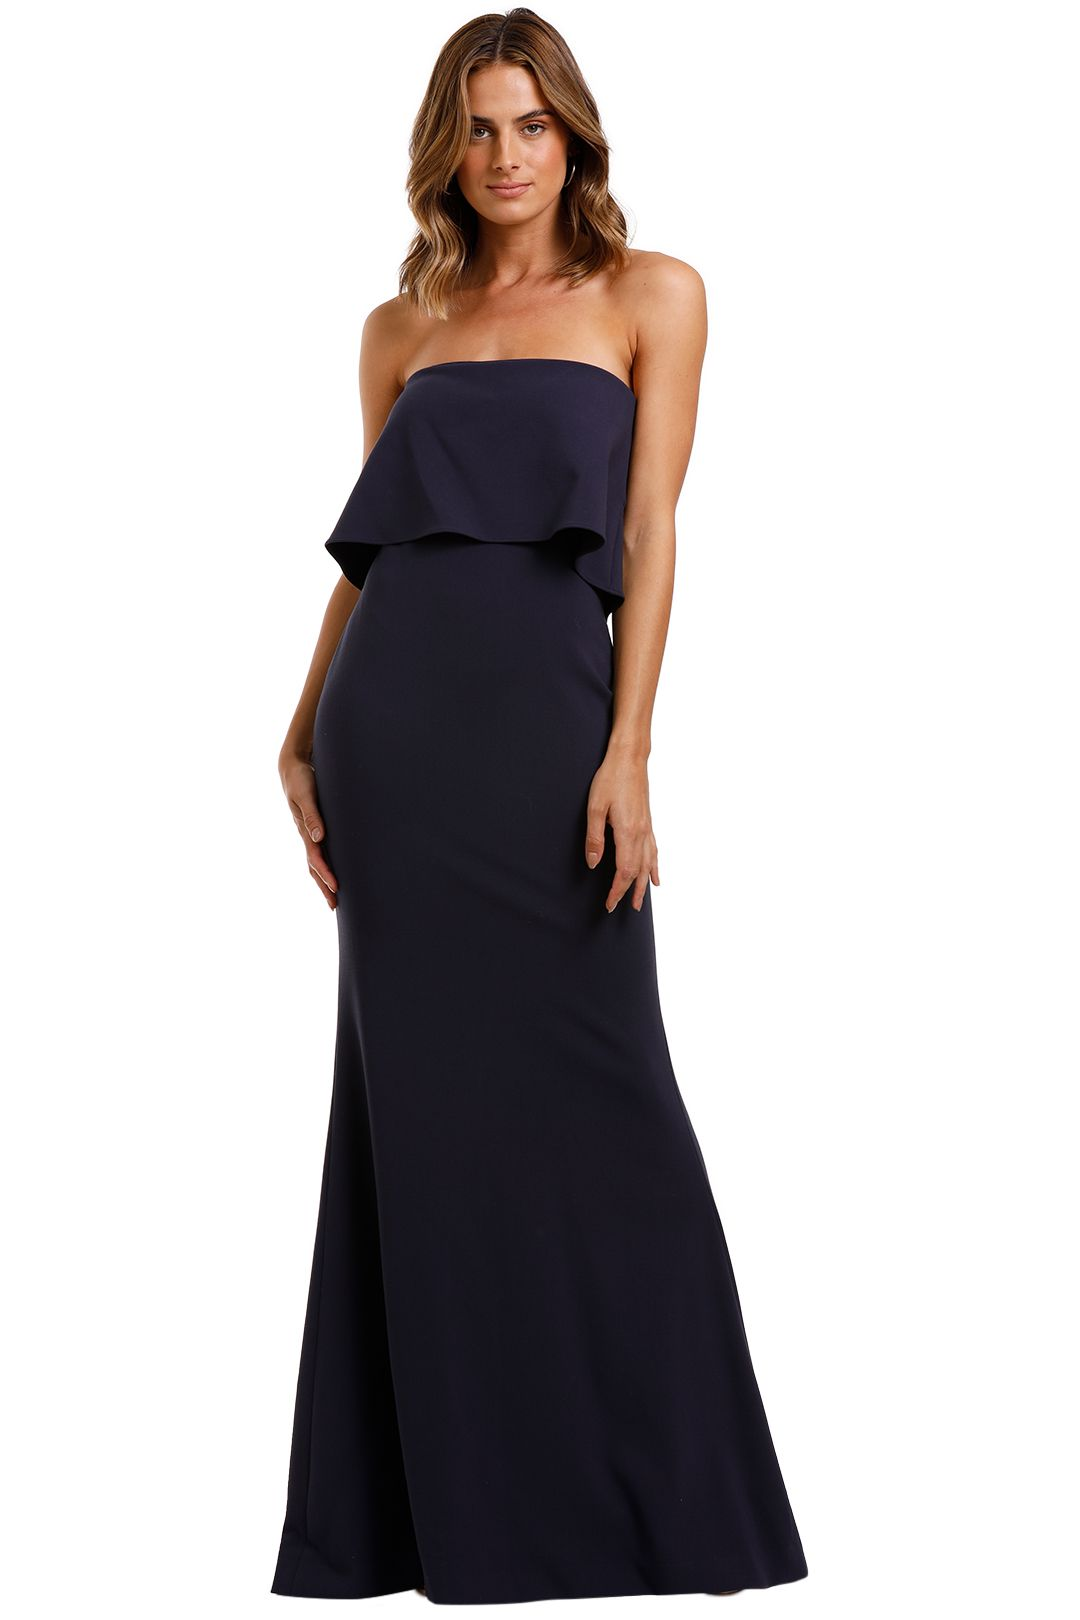 Likely NYC Driggs Gown Navy